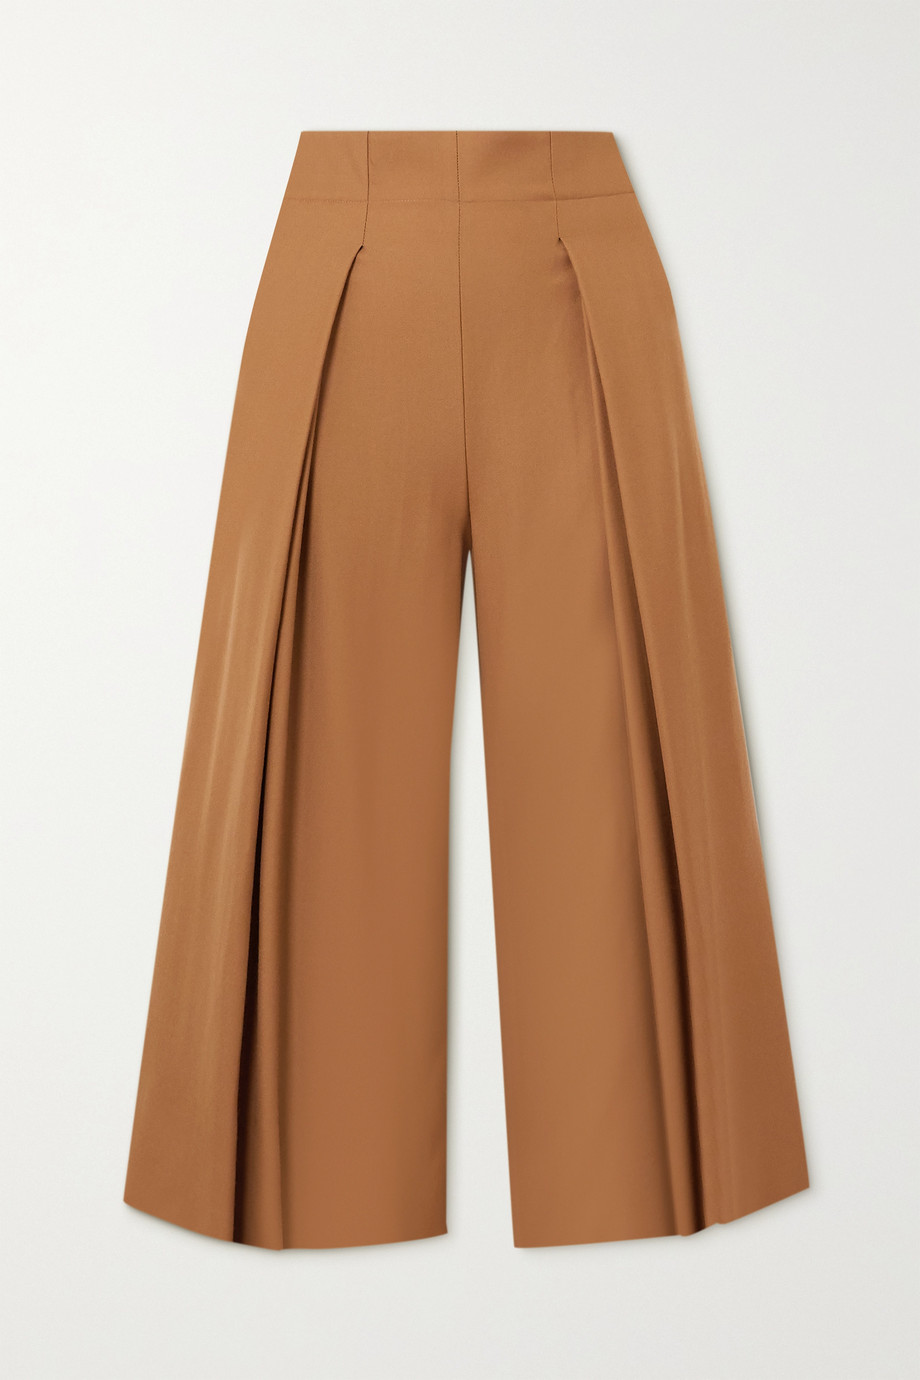 YOOX NET-A-PORTER For The Prince's Foundation Culottes aus Merinowolle mit Falten